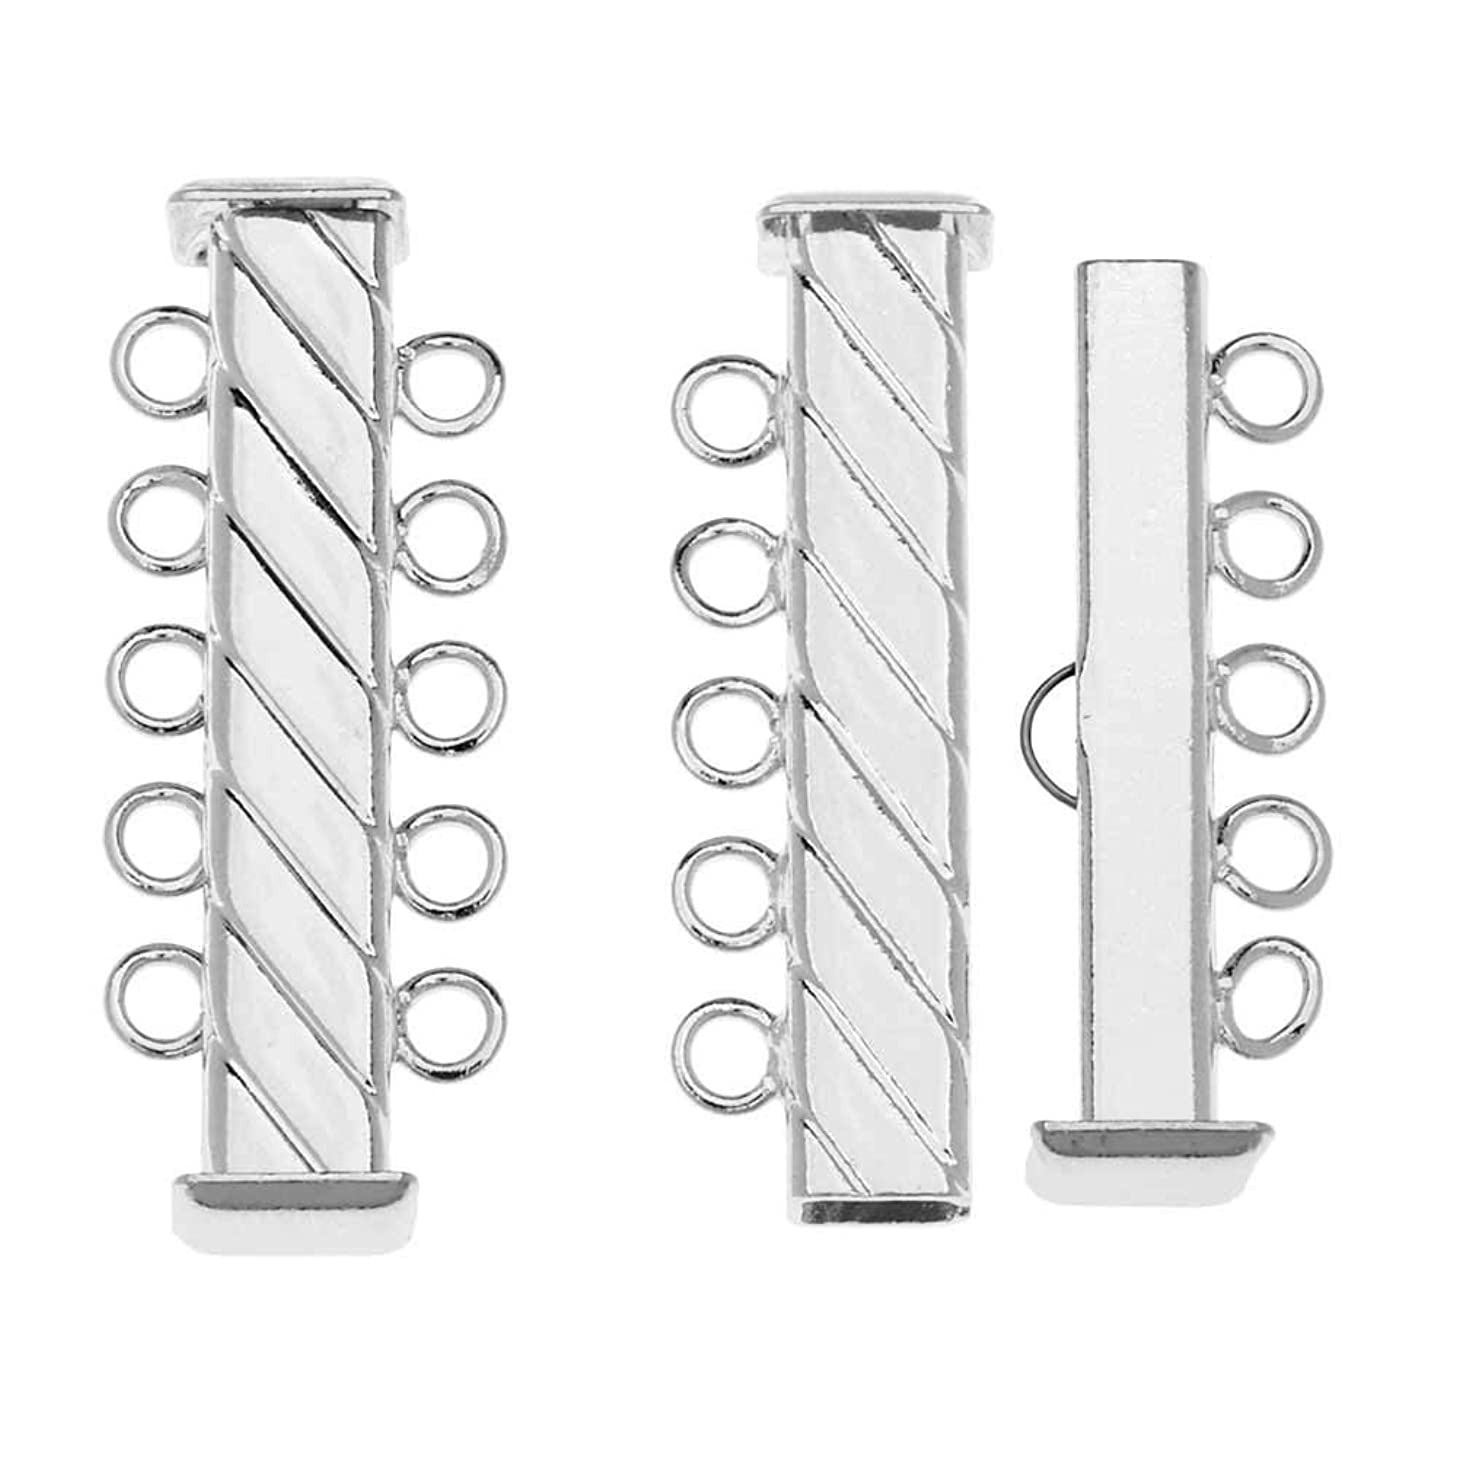 Slide Tube Clasps 5-Strand Fluted Rectangle 31mm Long, 3 Sets, Silver Plated